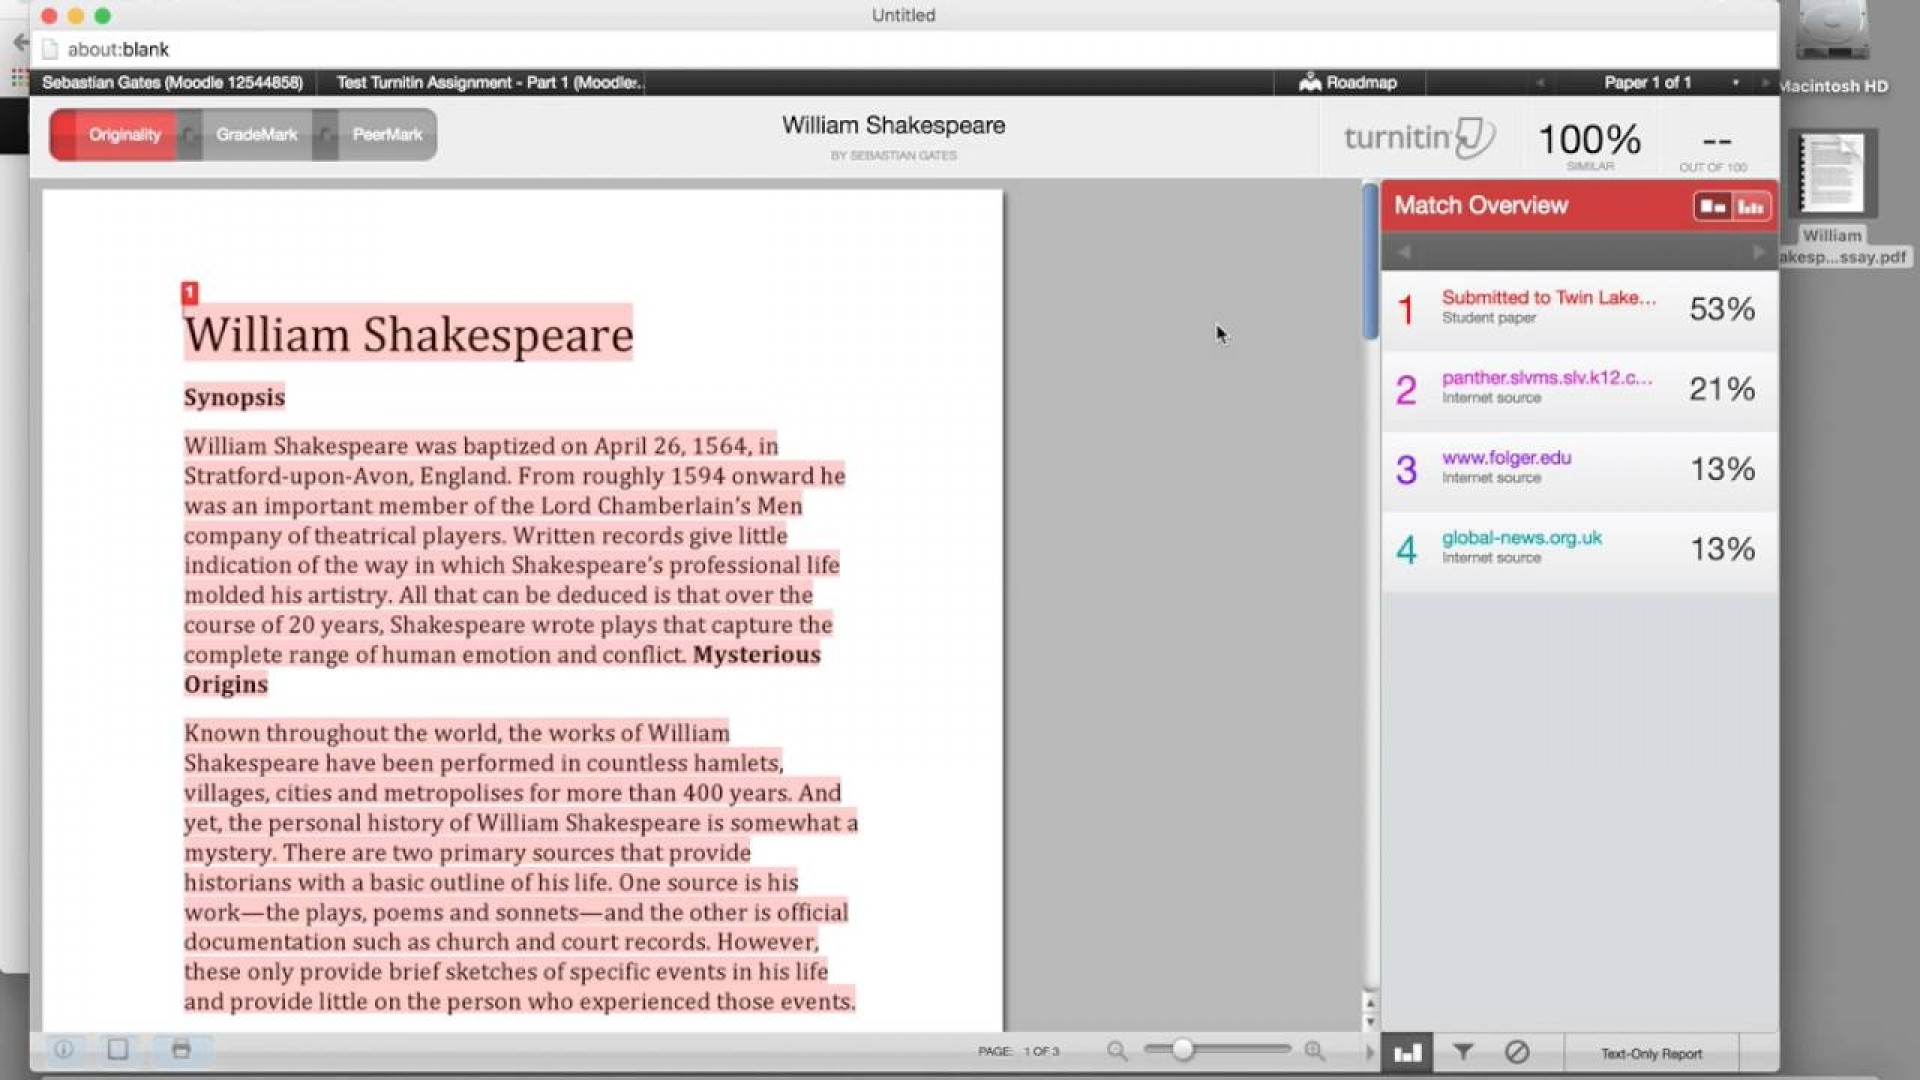 002 Maxresdefault Essay Example Similarity Incredible Checker Percentage Turnitin Check Time Plagiarism 1920